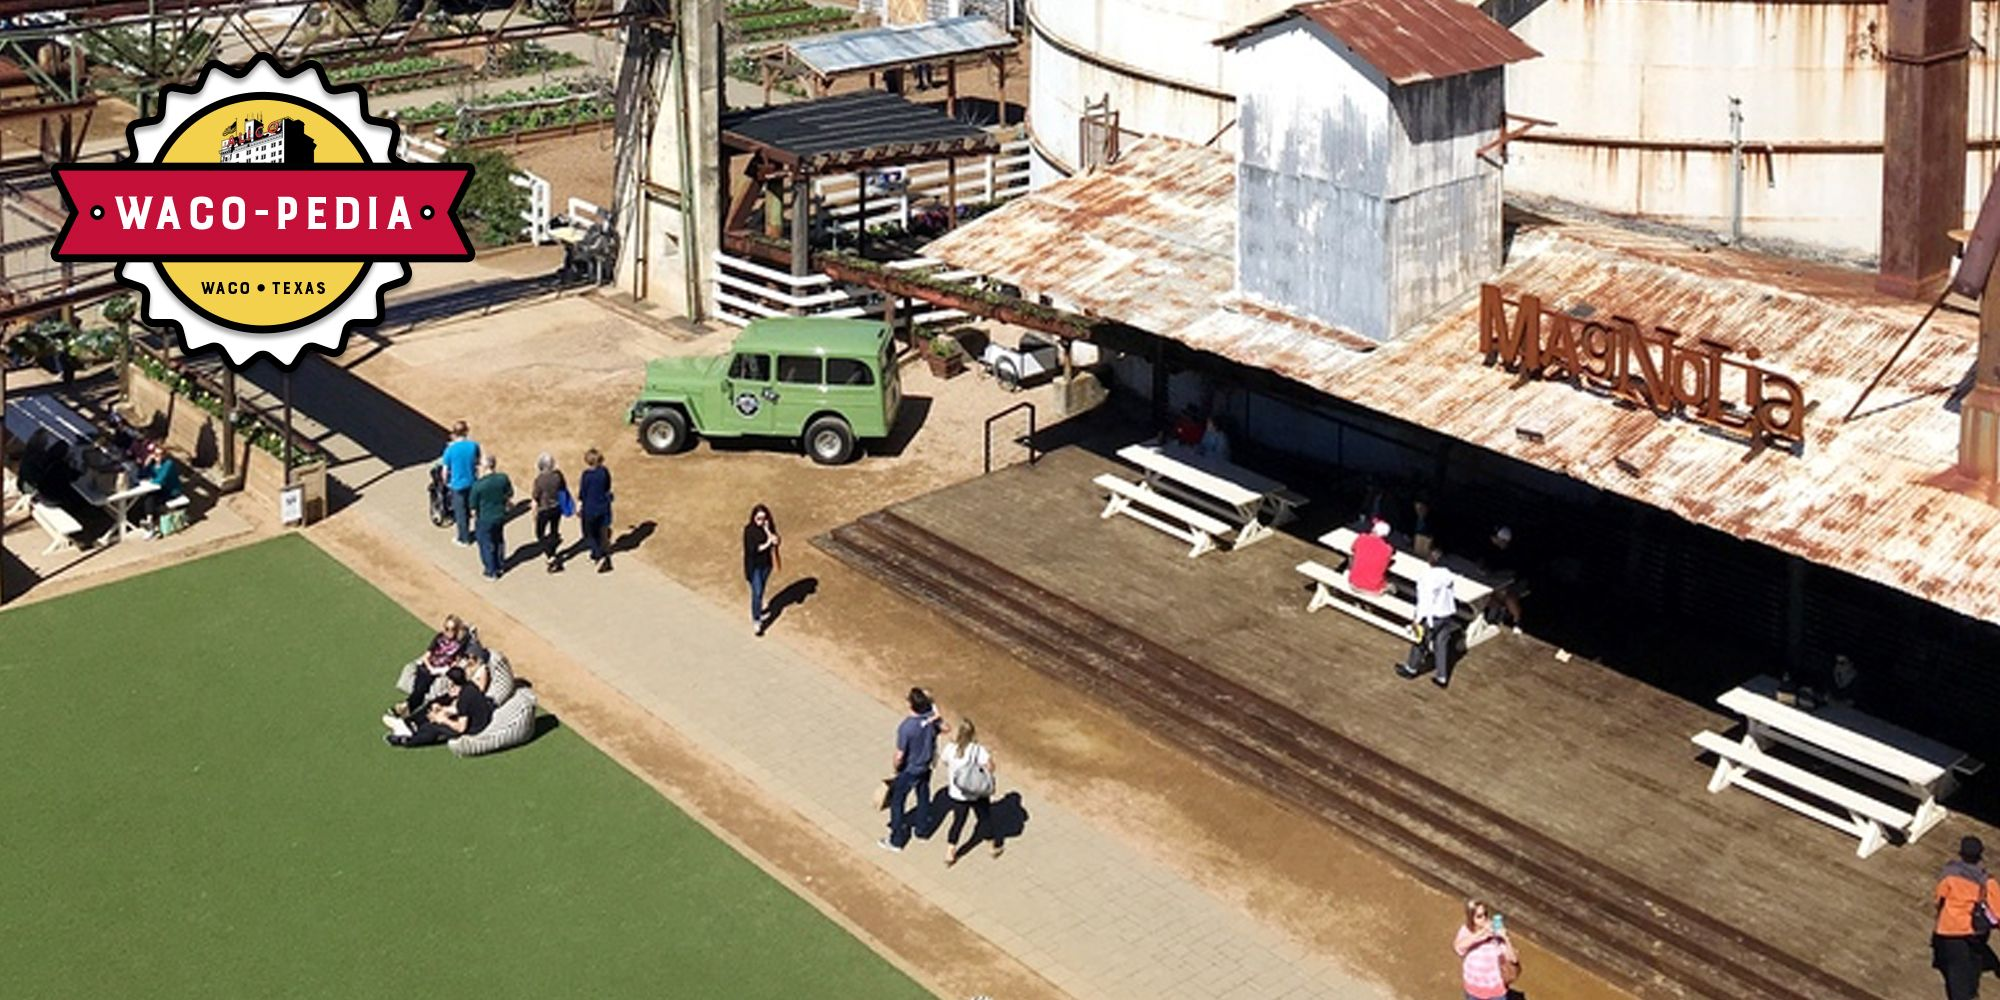 Chip And Joanna Gaines Magnolia Market 17 Things You Need To Know Before Visiting Waco Texas,Thanksgiving Side Dishes